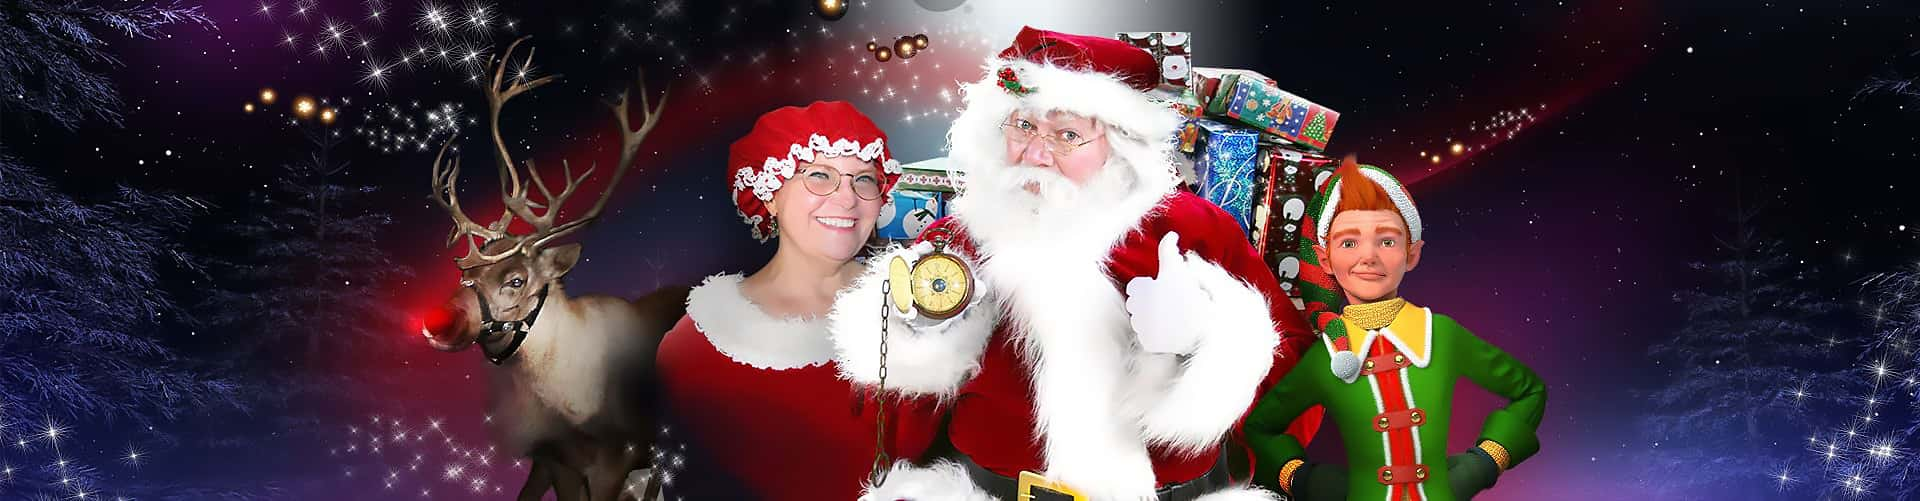 photo of Santa Claus, Mrs. Claus and reindeer